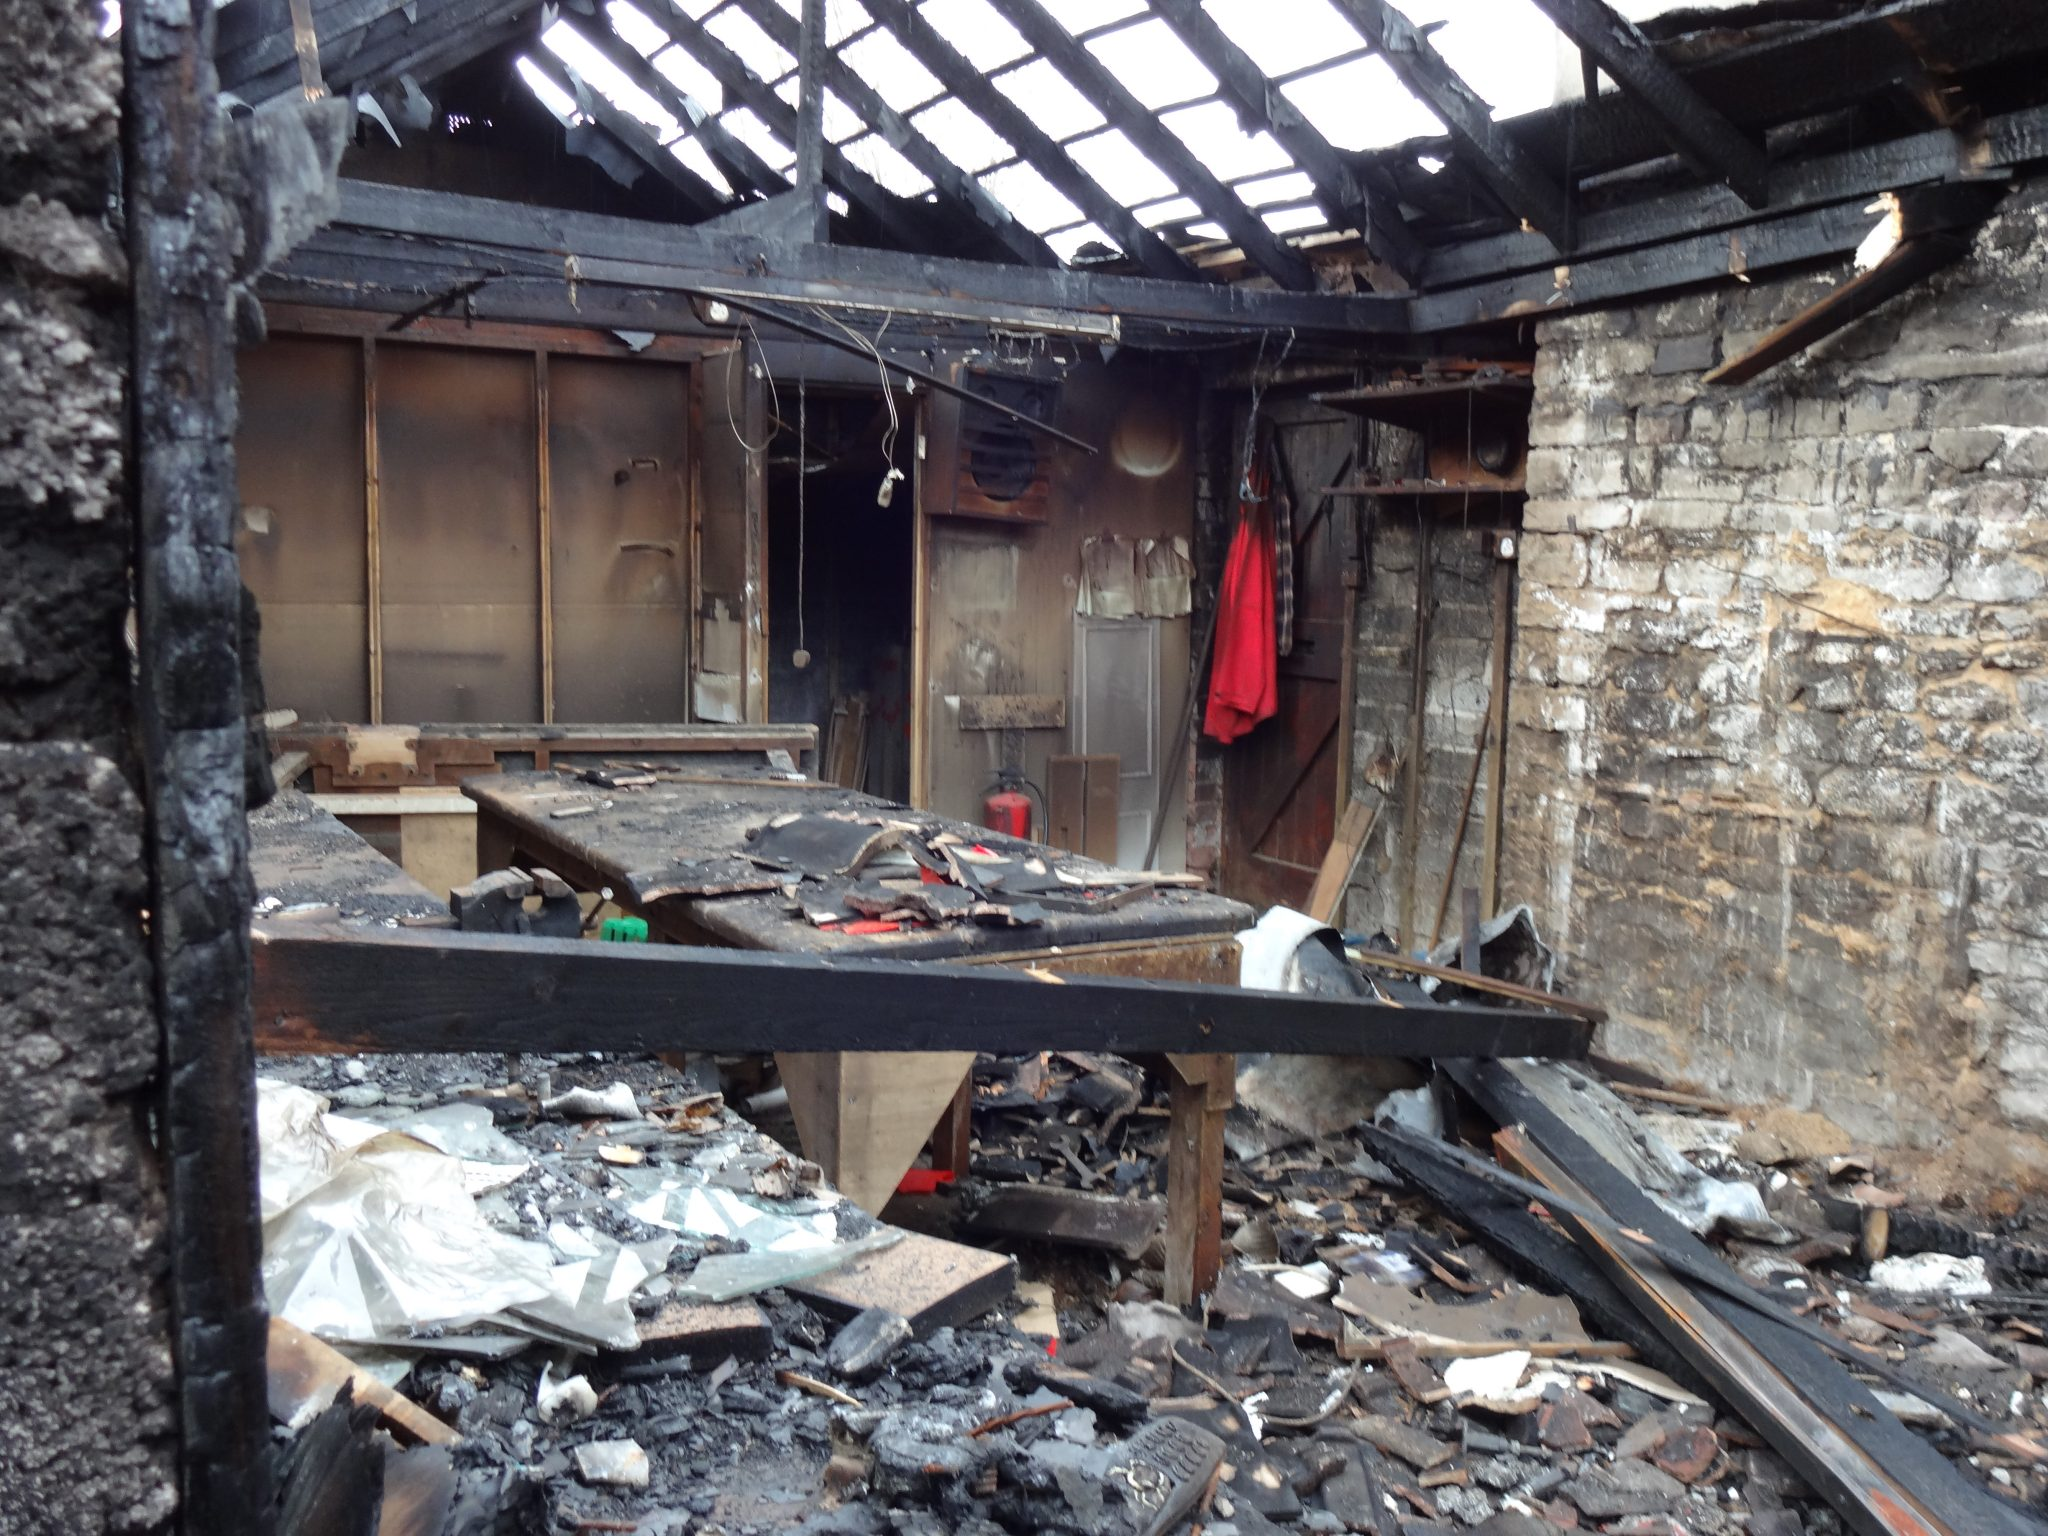 Fire Damaged Property for Demolition by AA Groundworks of Bath